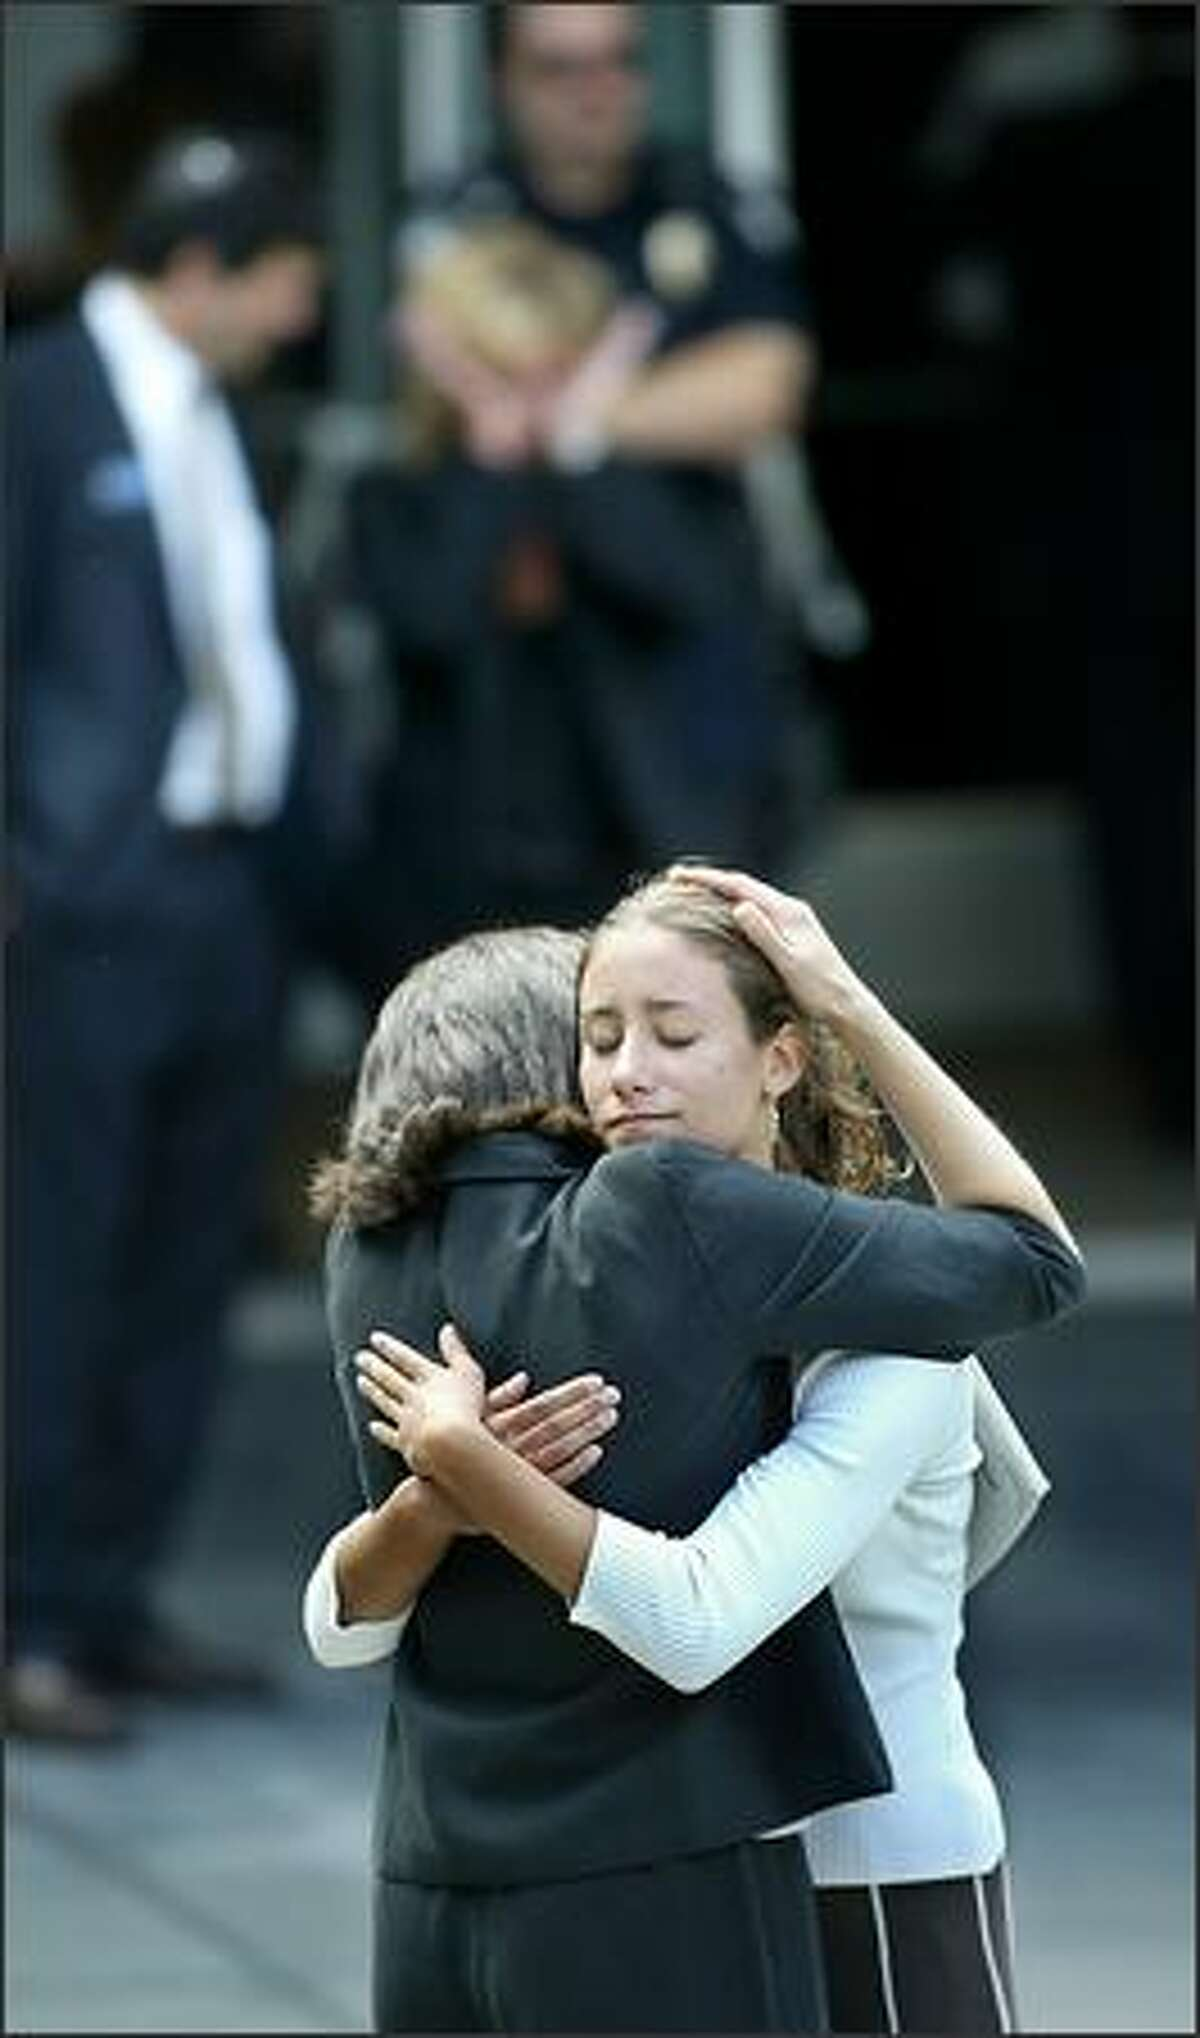 Karen Baer, left, and daughter Rachel Baer embrace Monday before the memorial service for Pam Waechter, at Temple B'nai Torah, in Bellevue. Waechter was killed during a gunman's shooting rampage at the offices of the Jewish Federation of Greater Seattle the previous Friday. The Baers both attend Temple B'nai Torah.